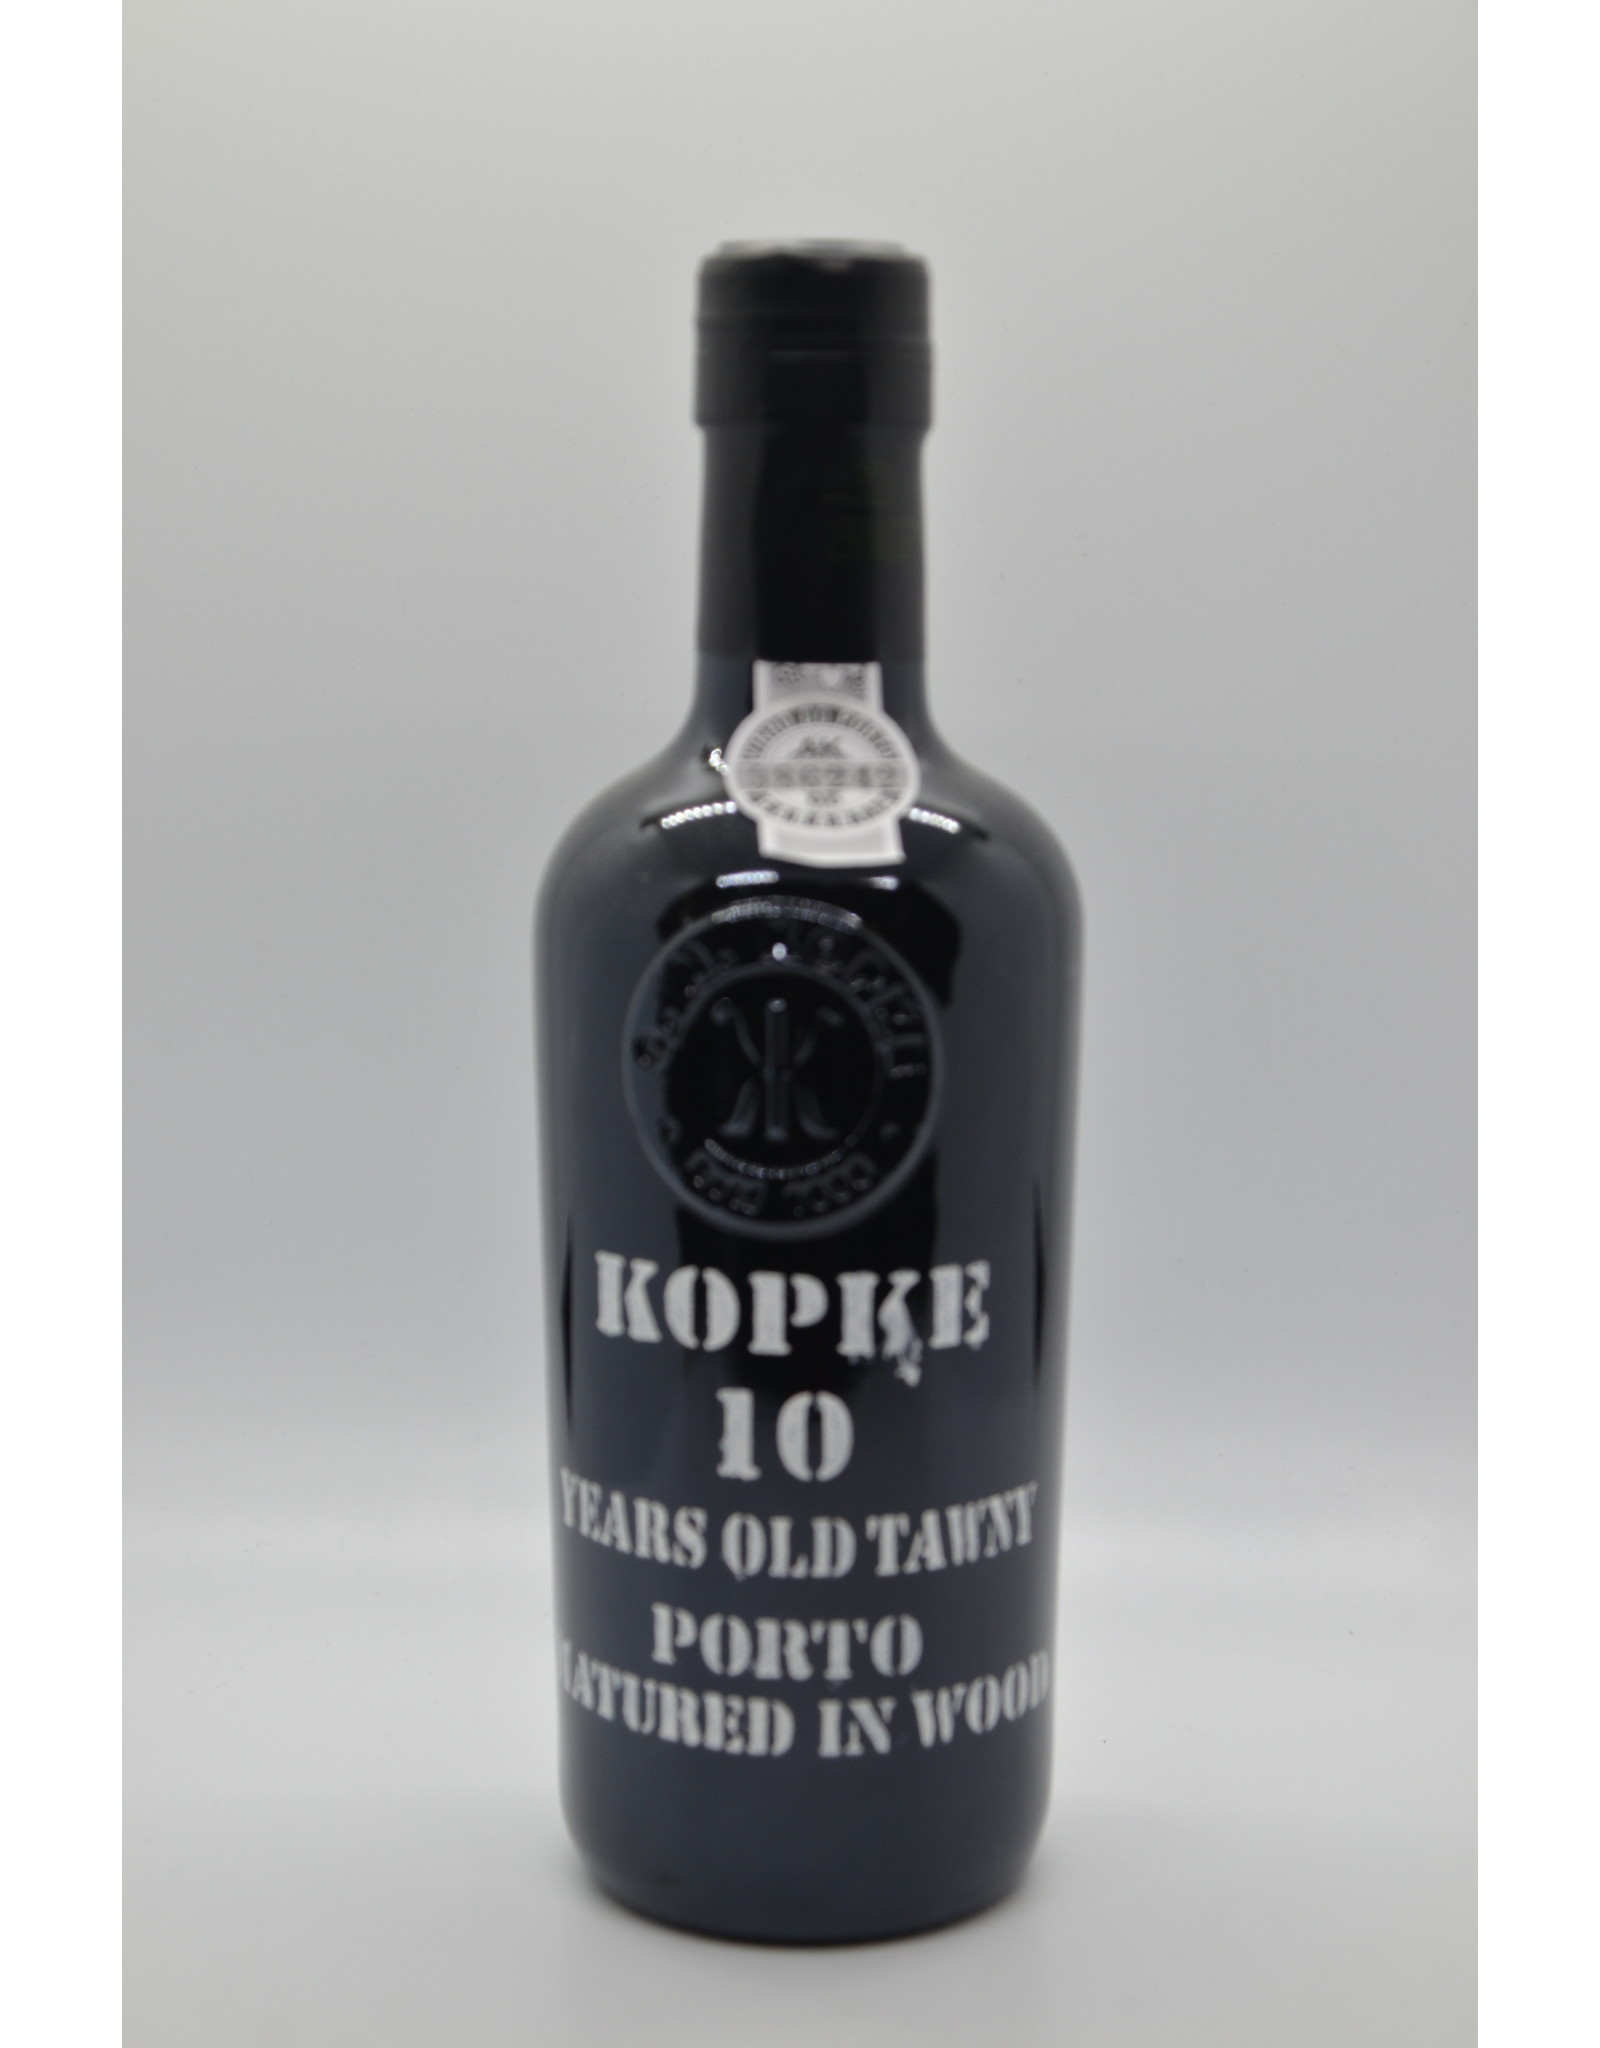 Portugal Kopke 10 Yo Tawny 375ml